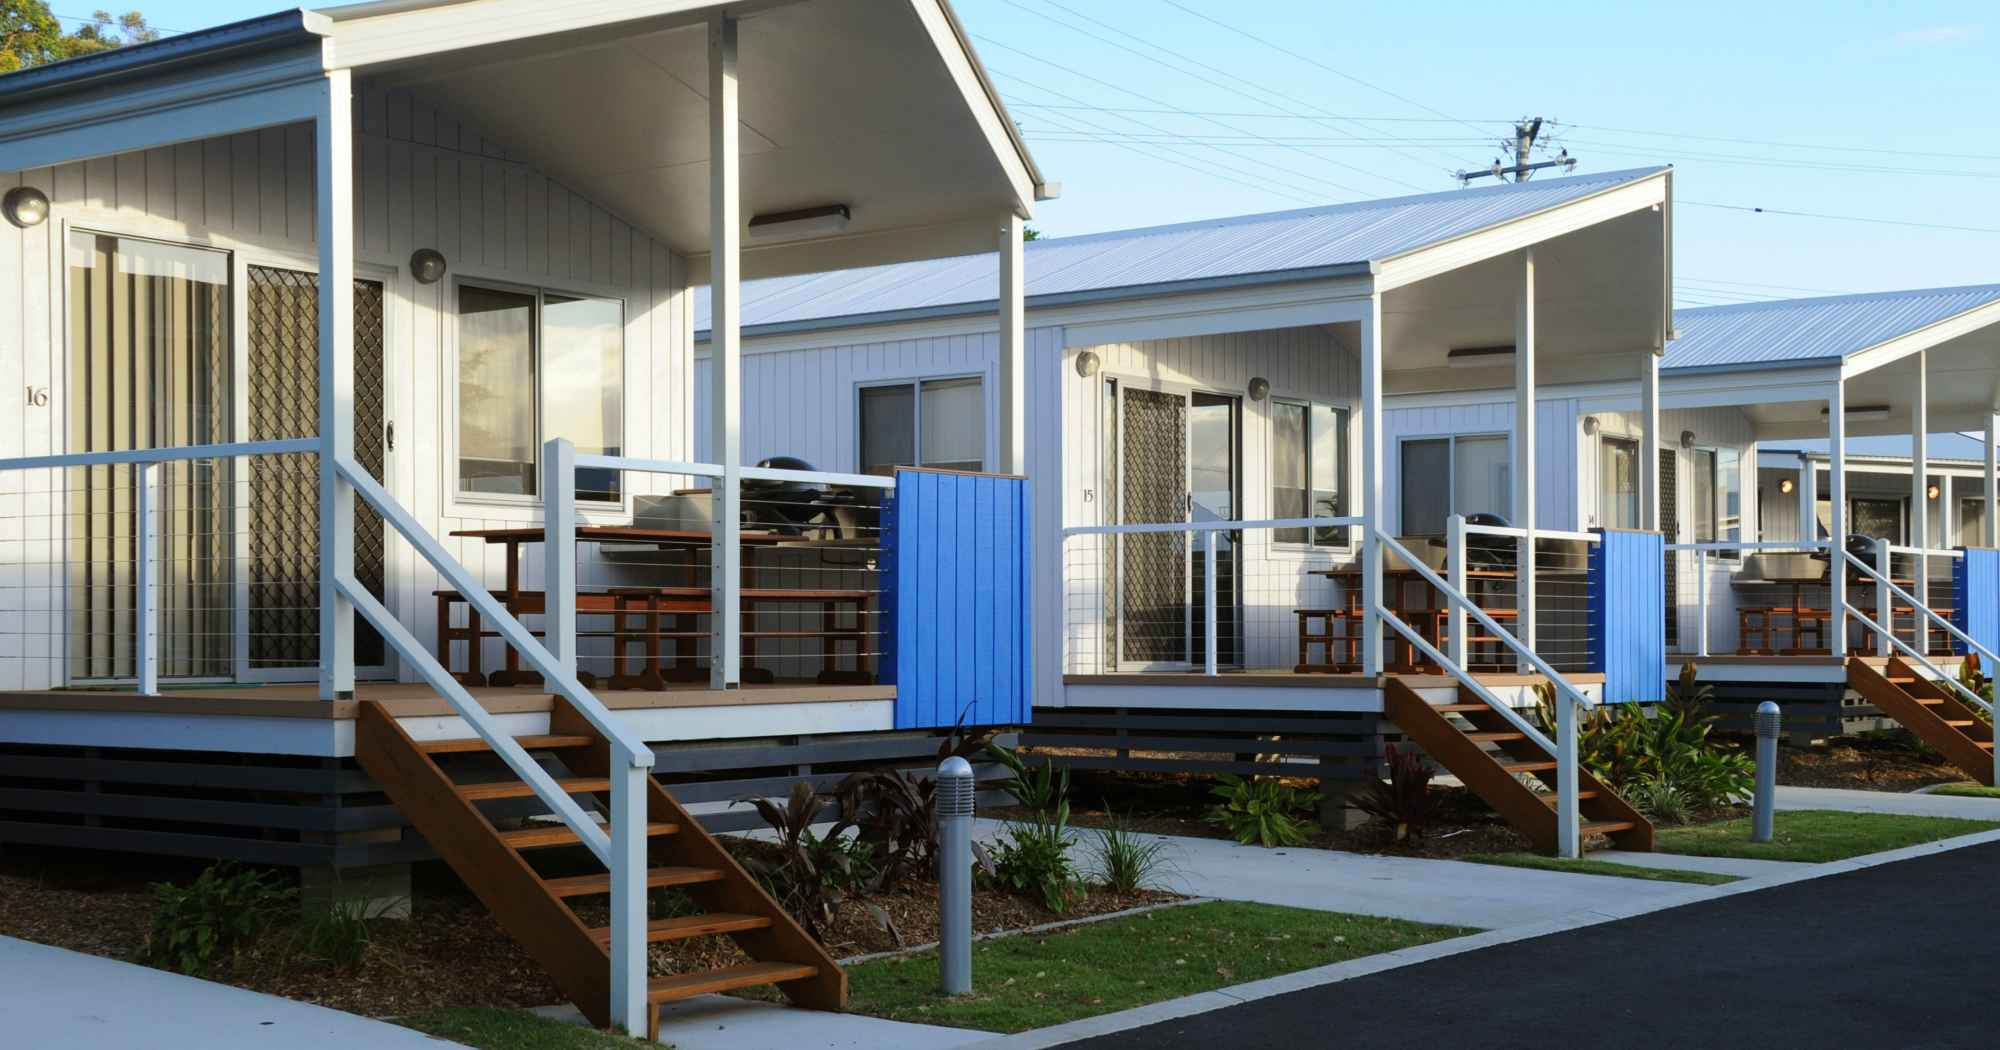 Self-contained Villas, Cabins, Penthouses